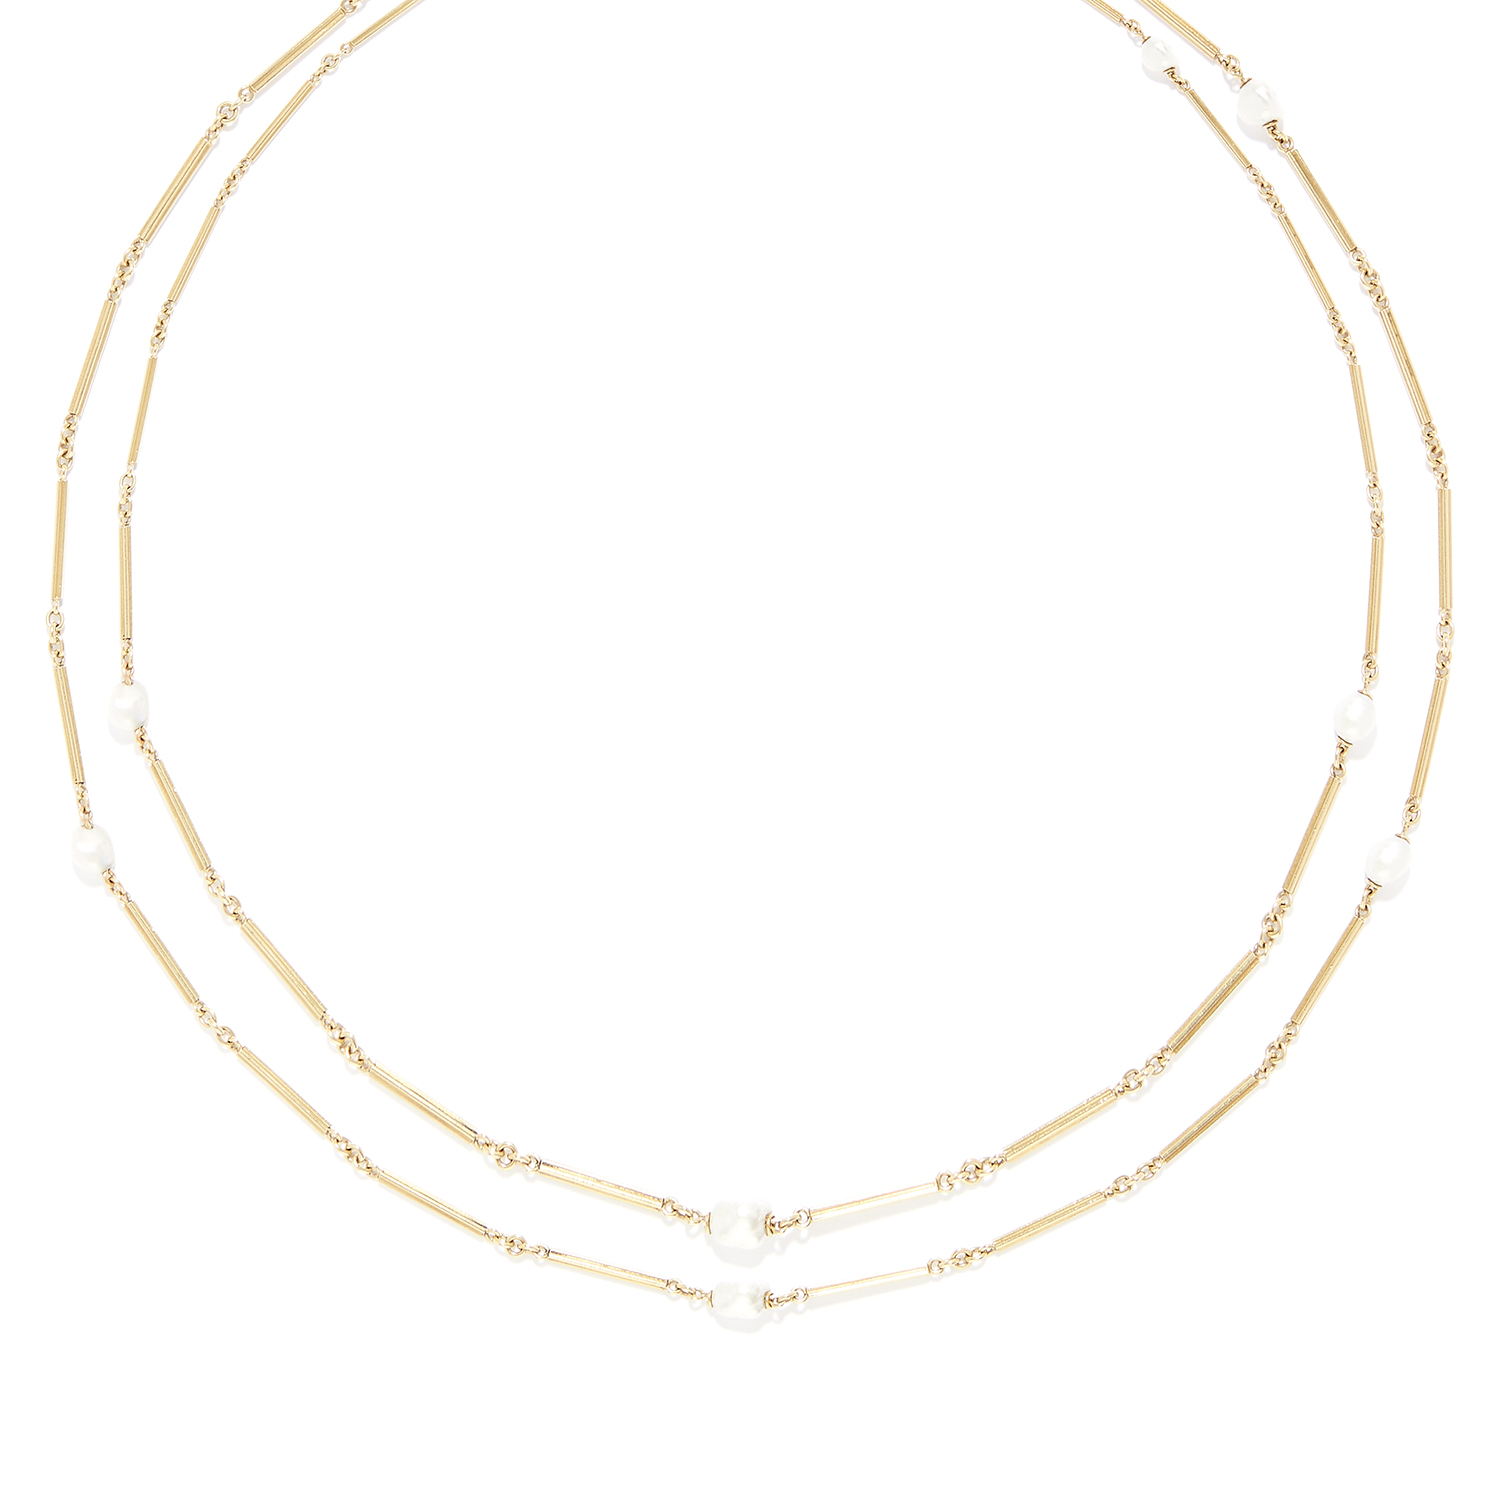 ANTIQUE PEARL LONGCHAIN SAUTOIR NECKLACE in high carat yellow gold, comprising a single row of fancy